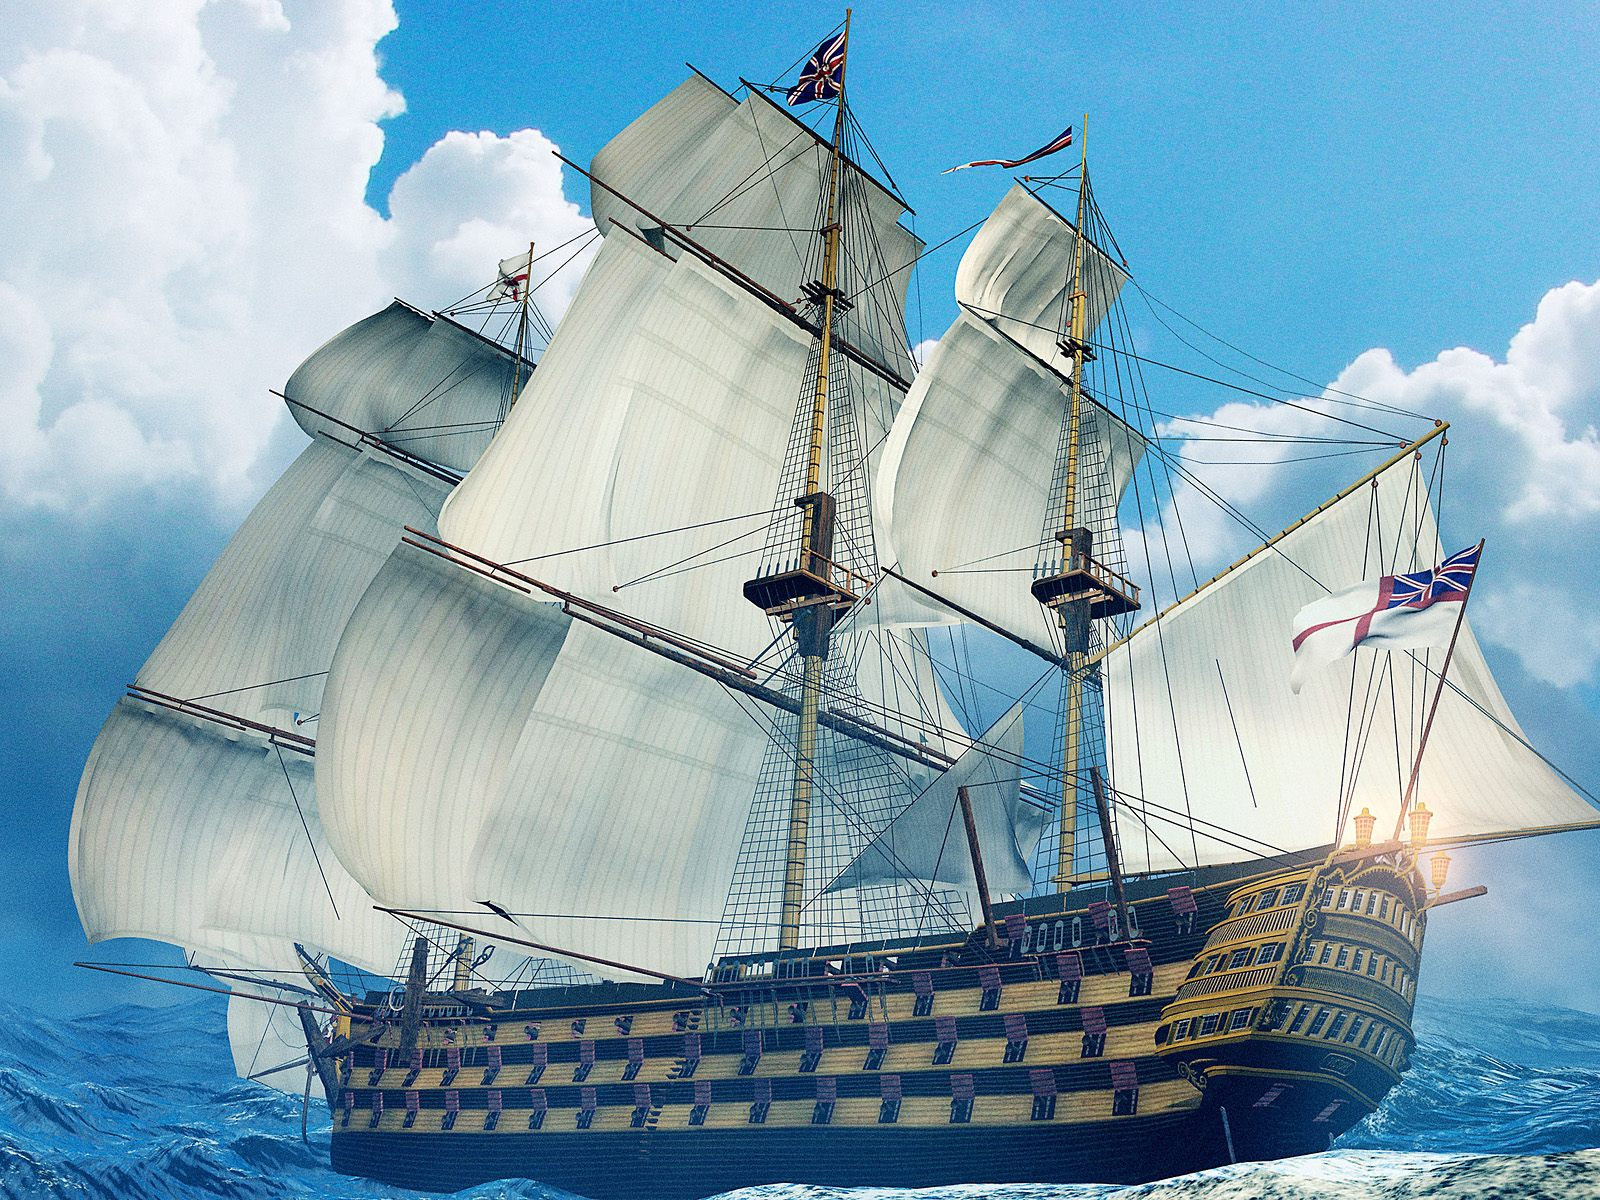 wallpaper huge ship 3d graphics. Wallpapers 3d for desktop, 3d